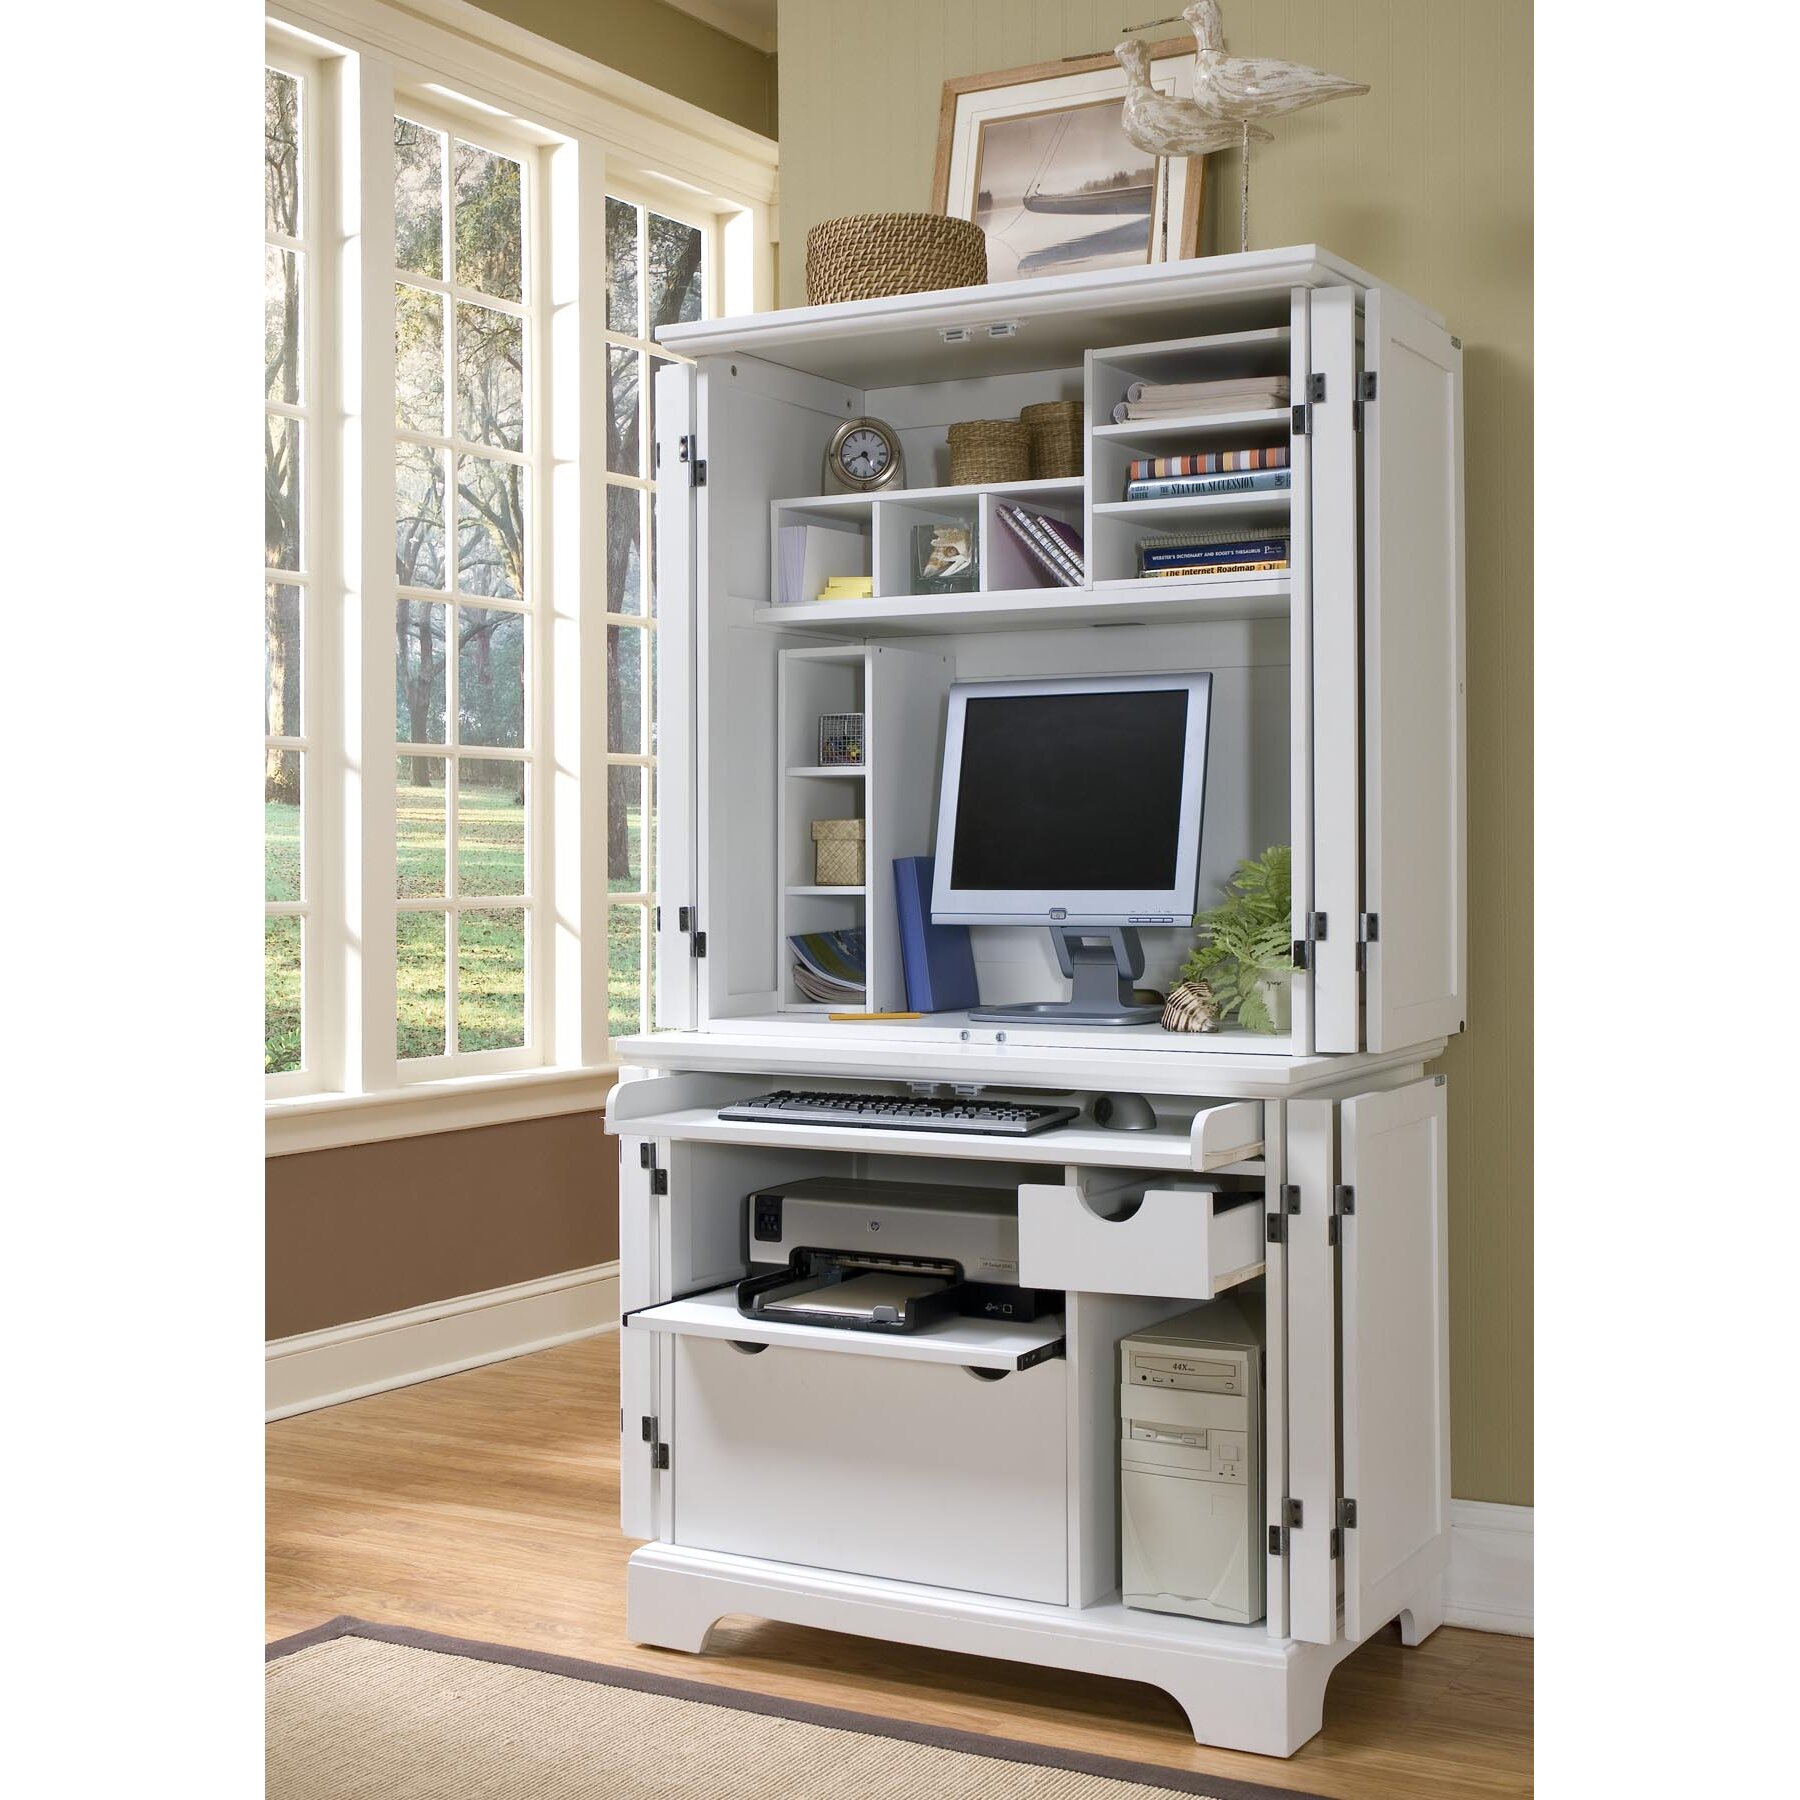 perth amboy compact office cabinet and hutch wayfair wholesale kitchen cabinet distributors 15 photos